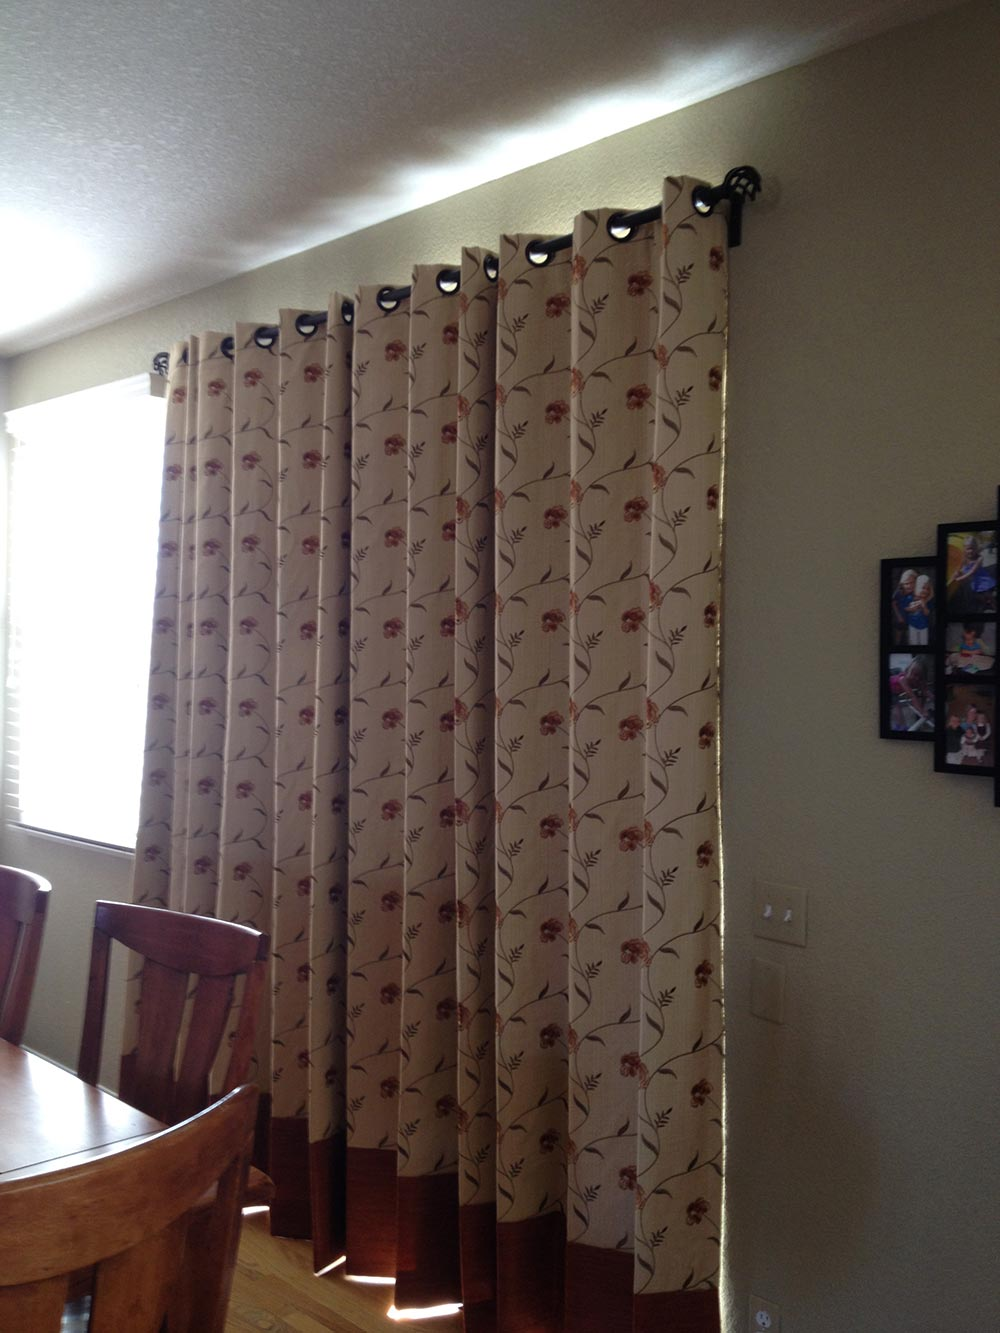 heavy curtains cover large window